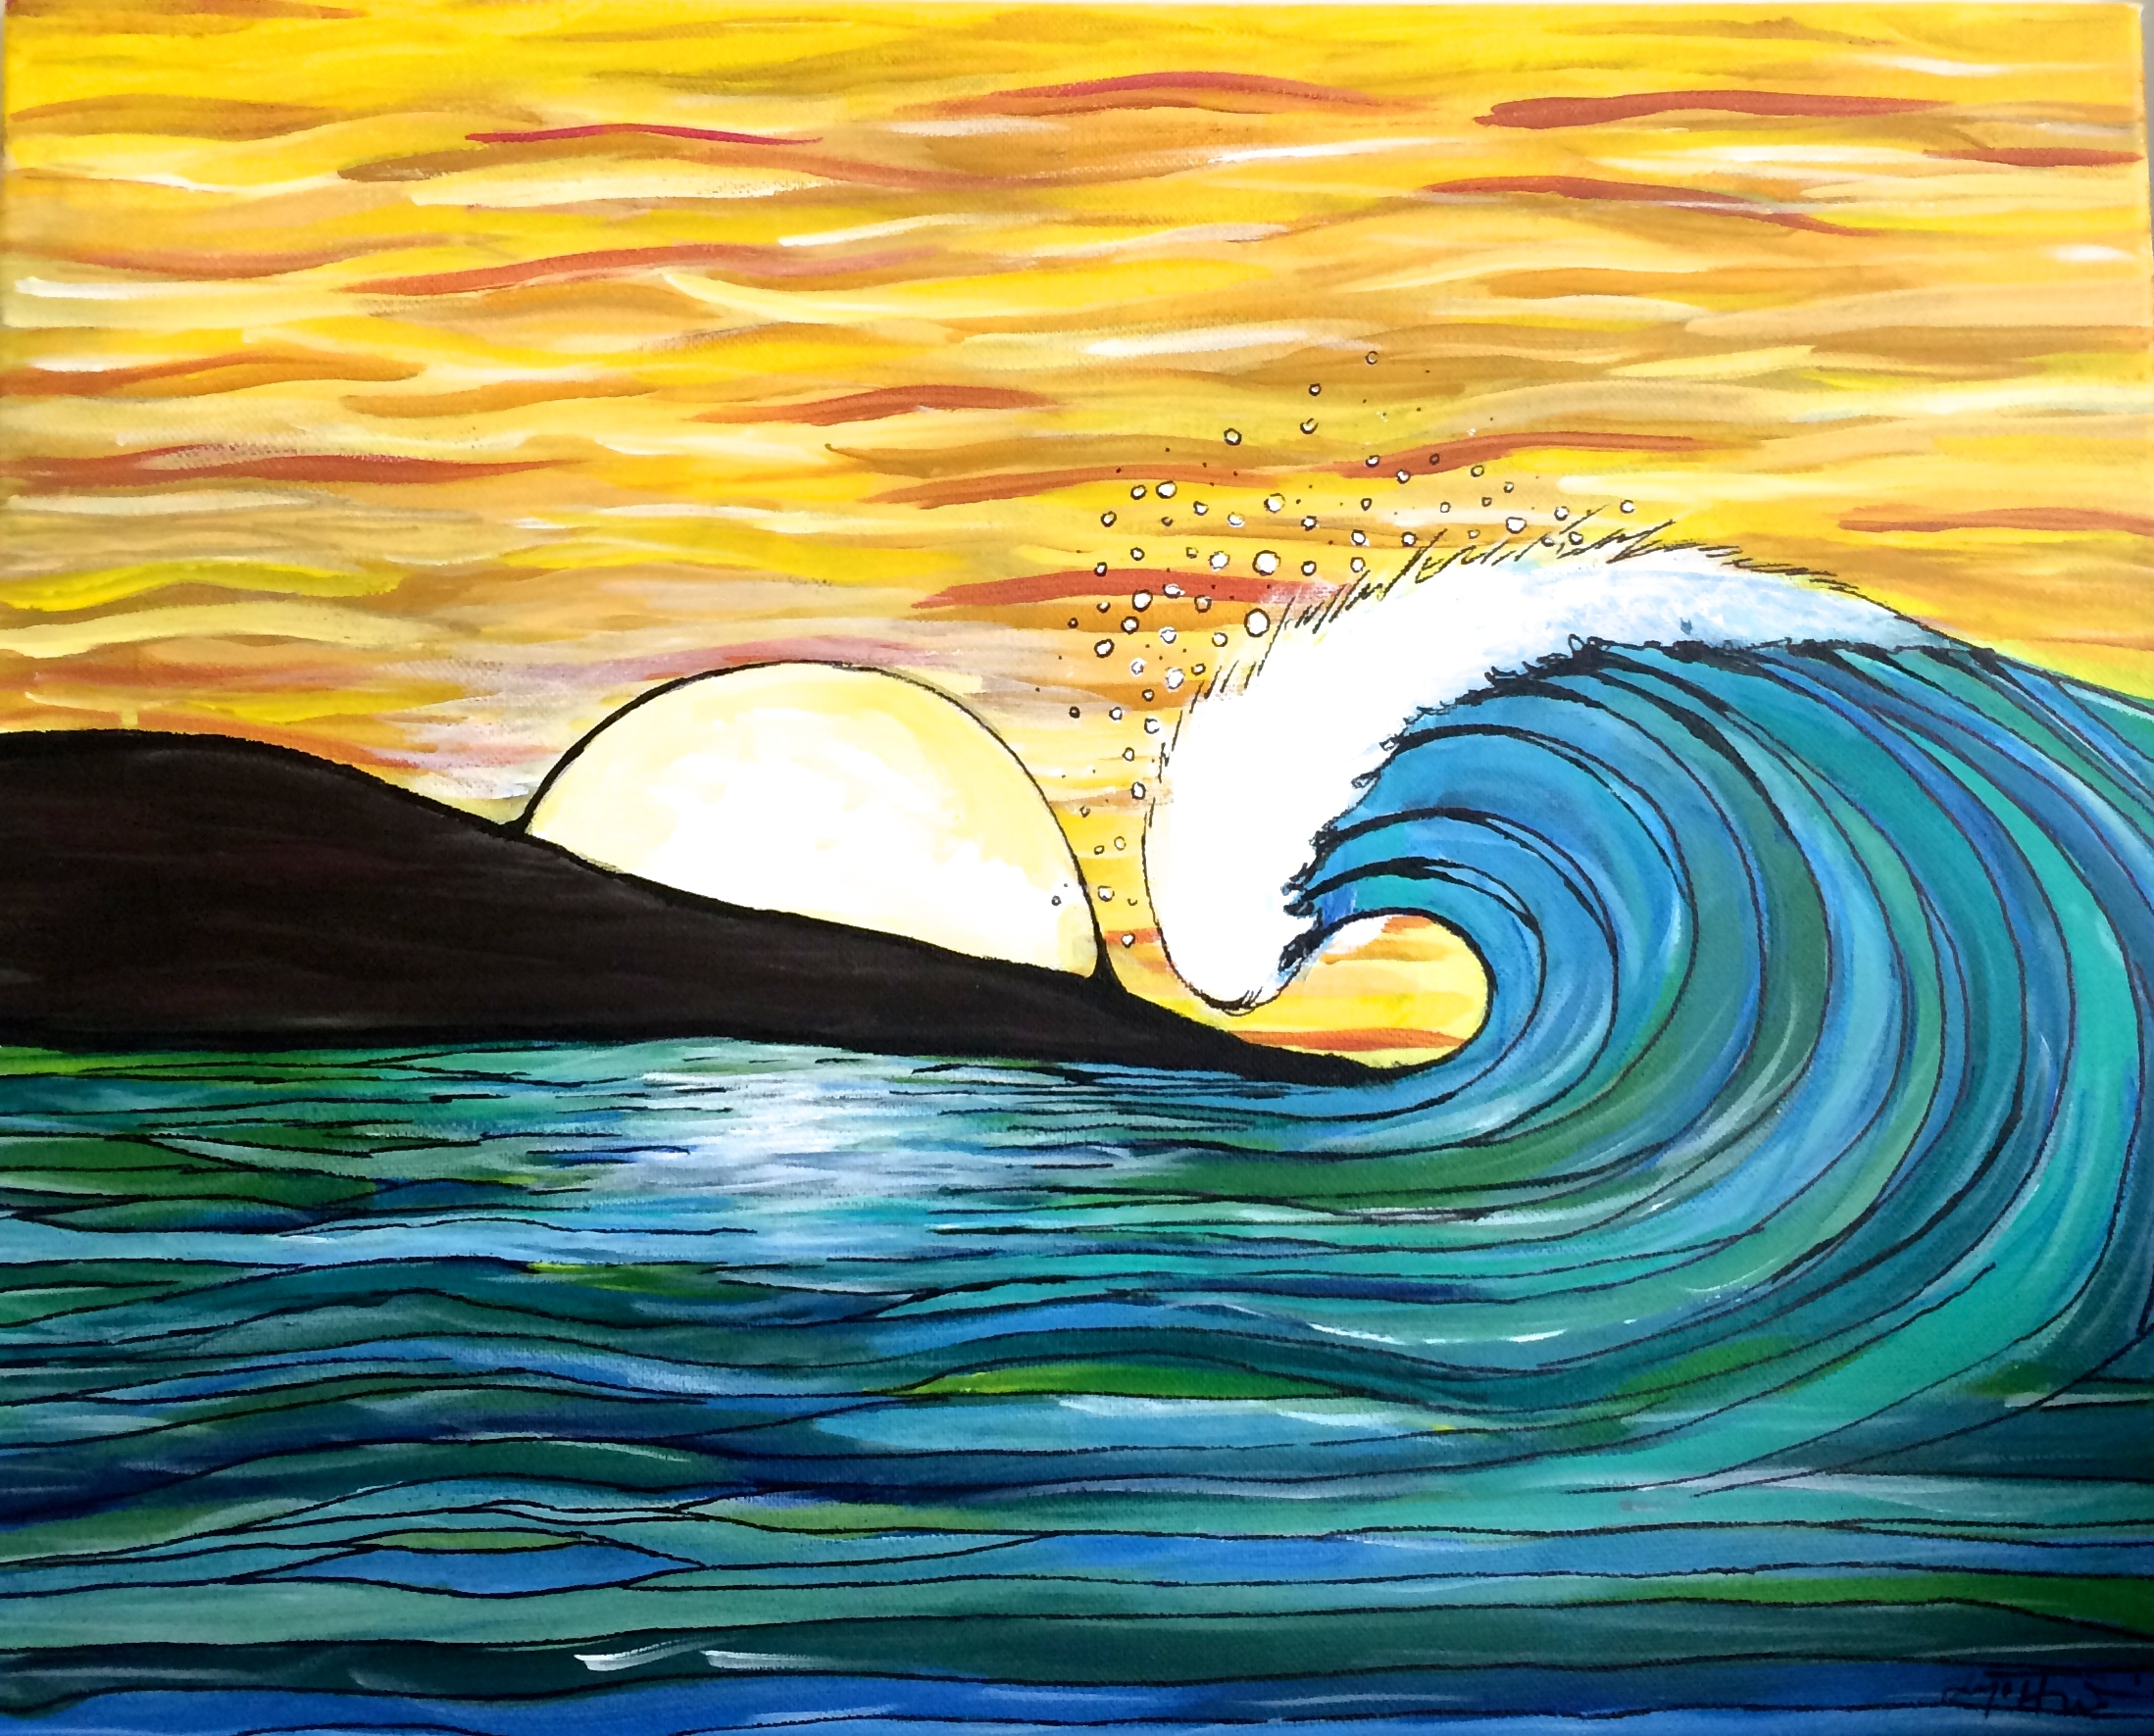 sunset wave painting from